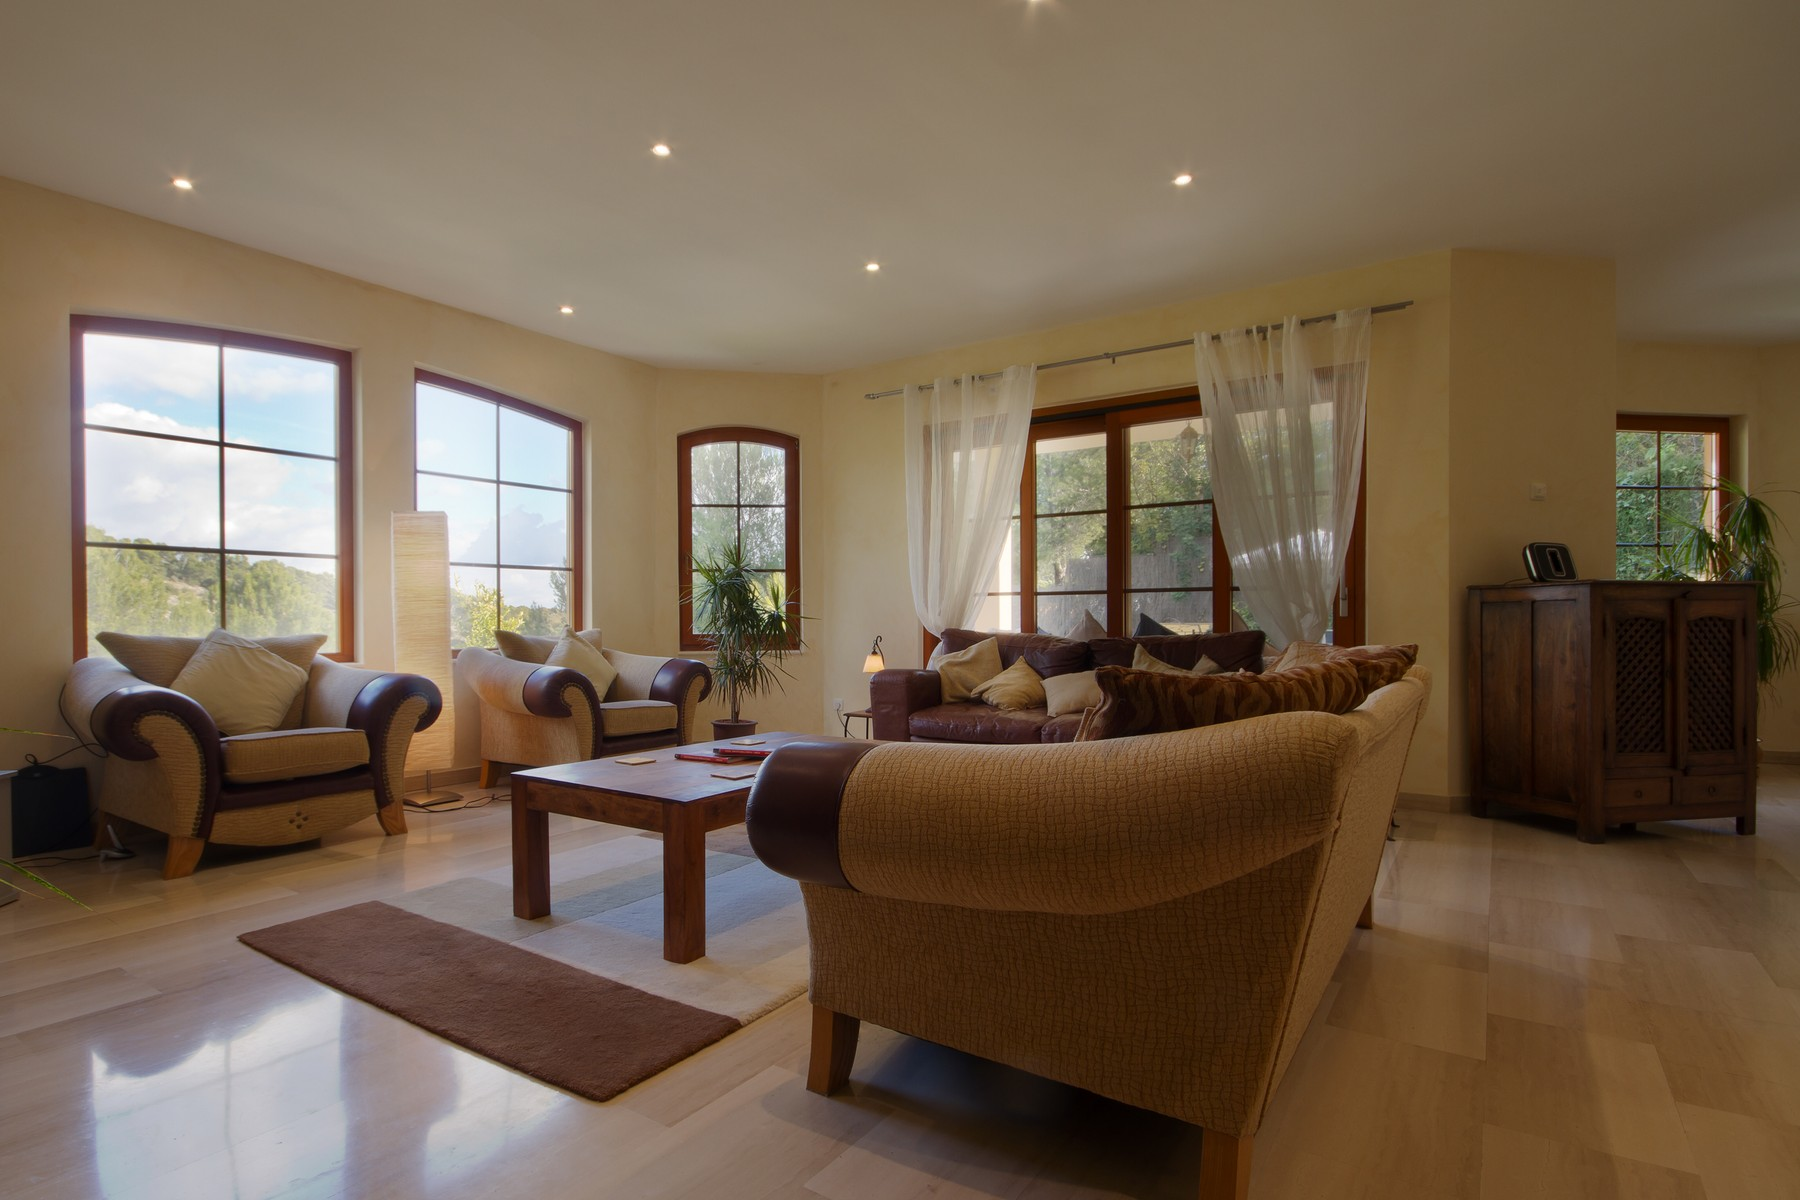 Additional photo for property listing at Luxury high quality villa in Bendinat Bendinat, Mallorca Spain